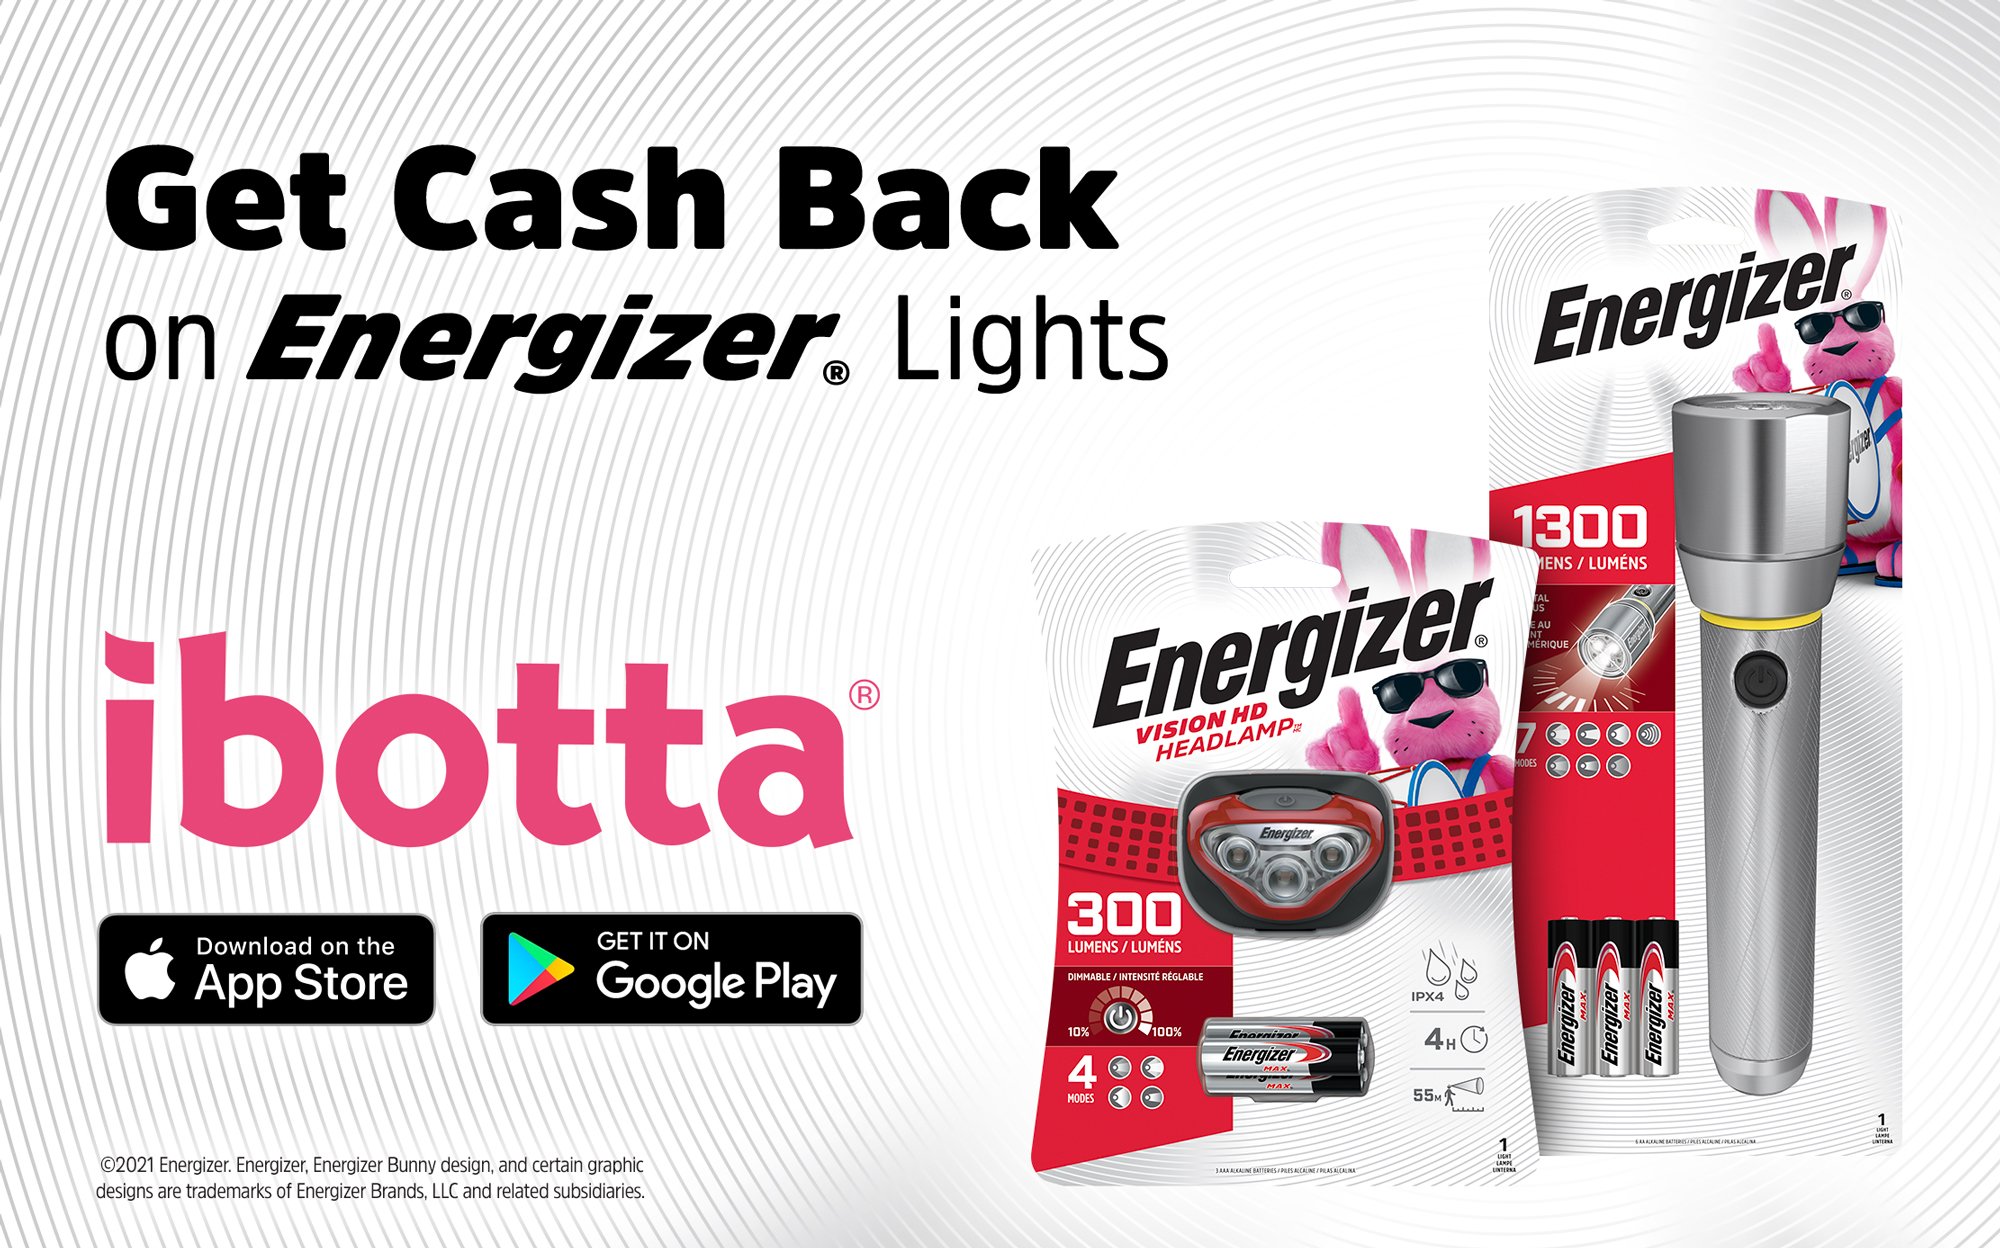 ibotta lights promotion